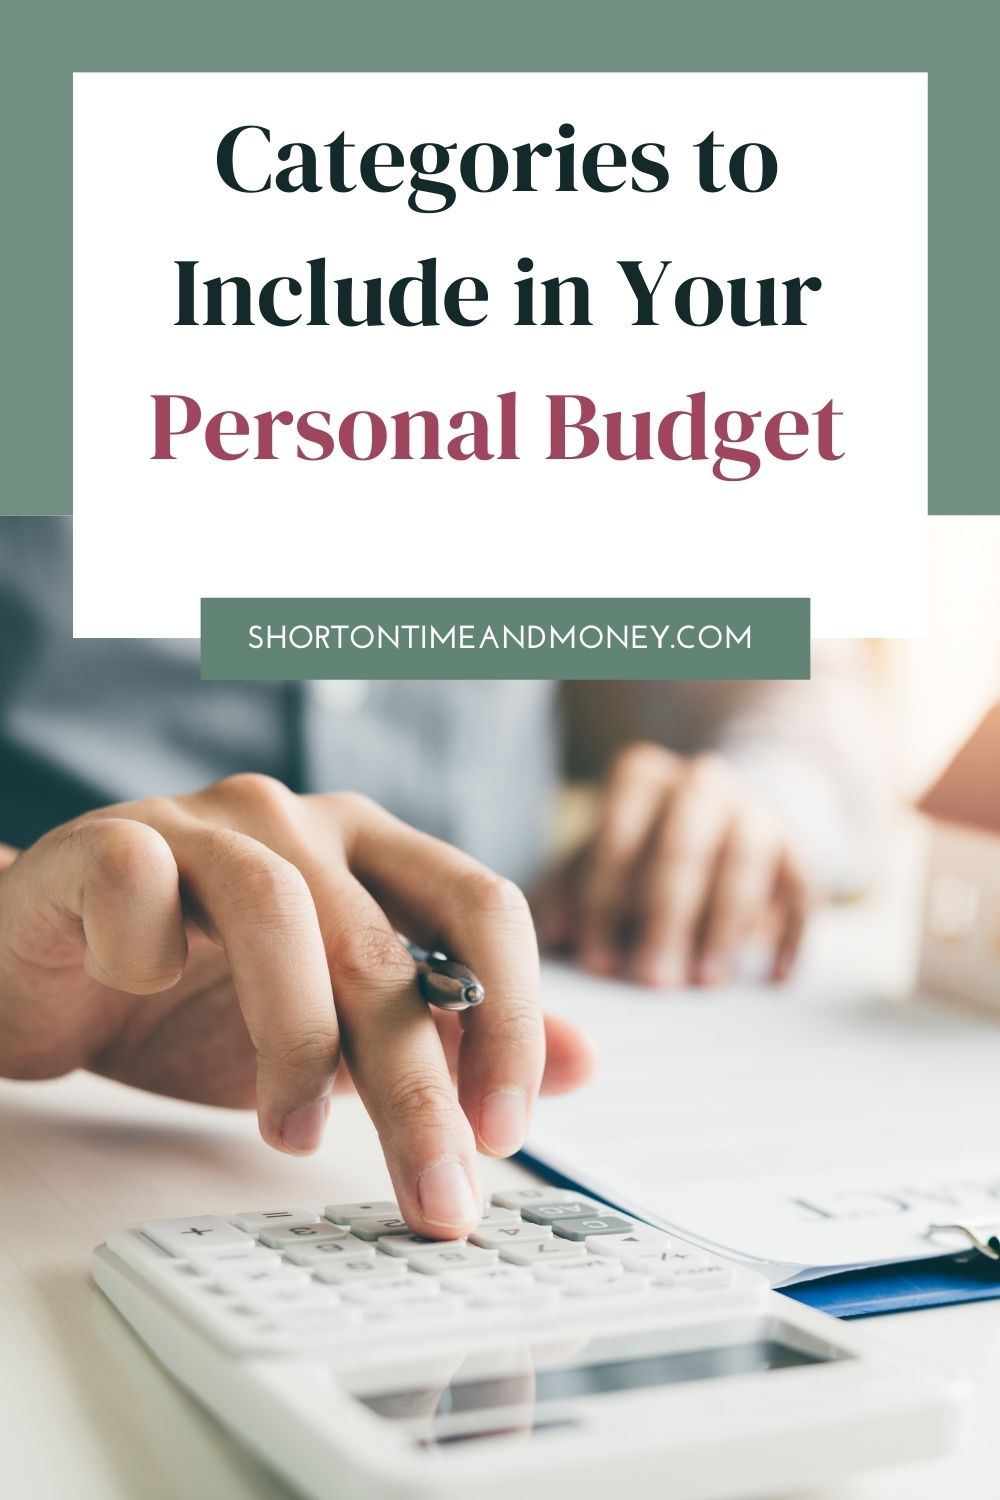 Categories to Include in Your Personal Budget @ Short on Time and Money